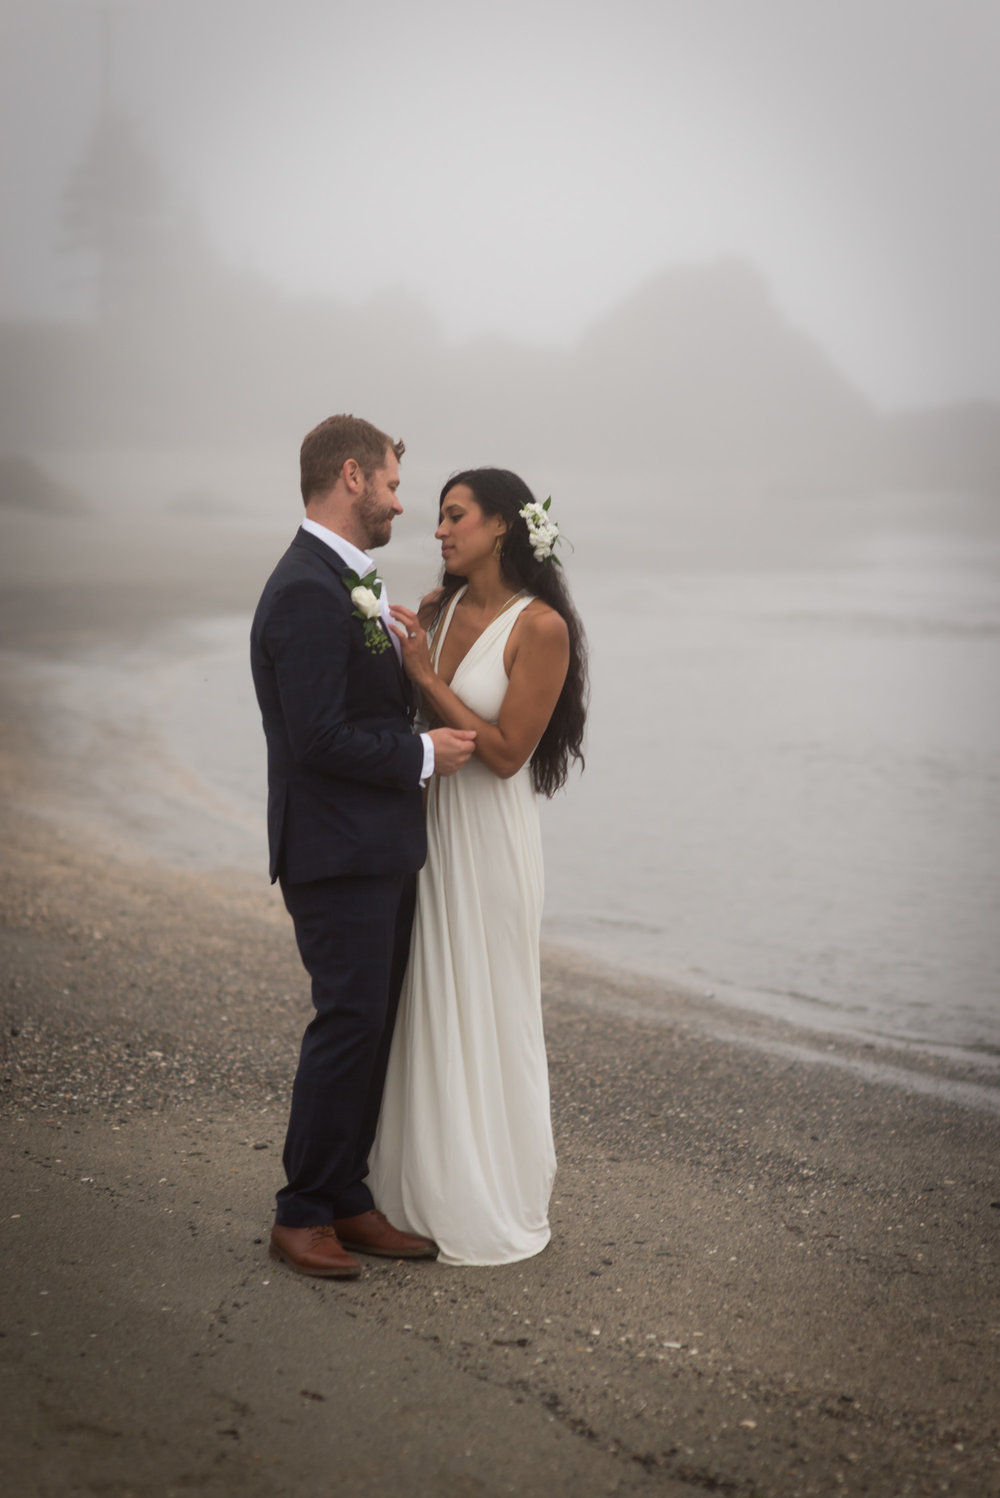 Mystical bohemian elopement in the PNW fog